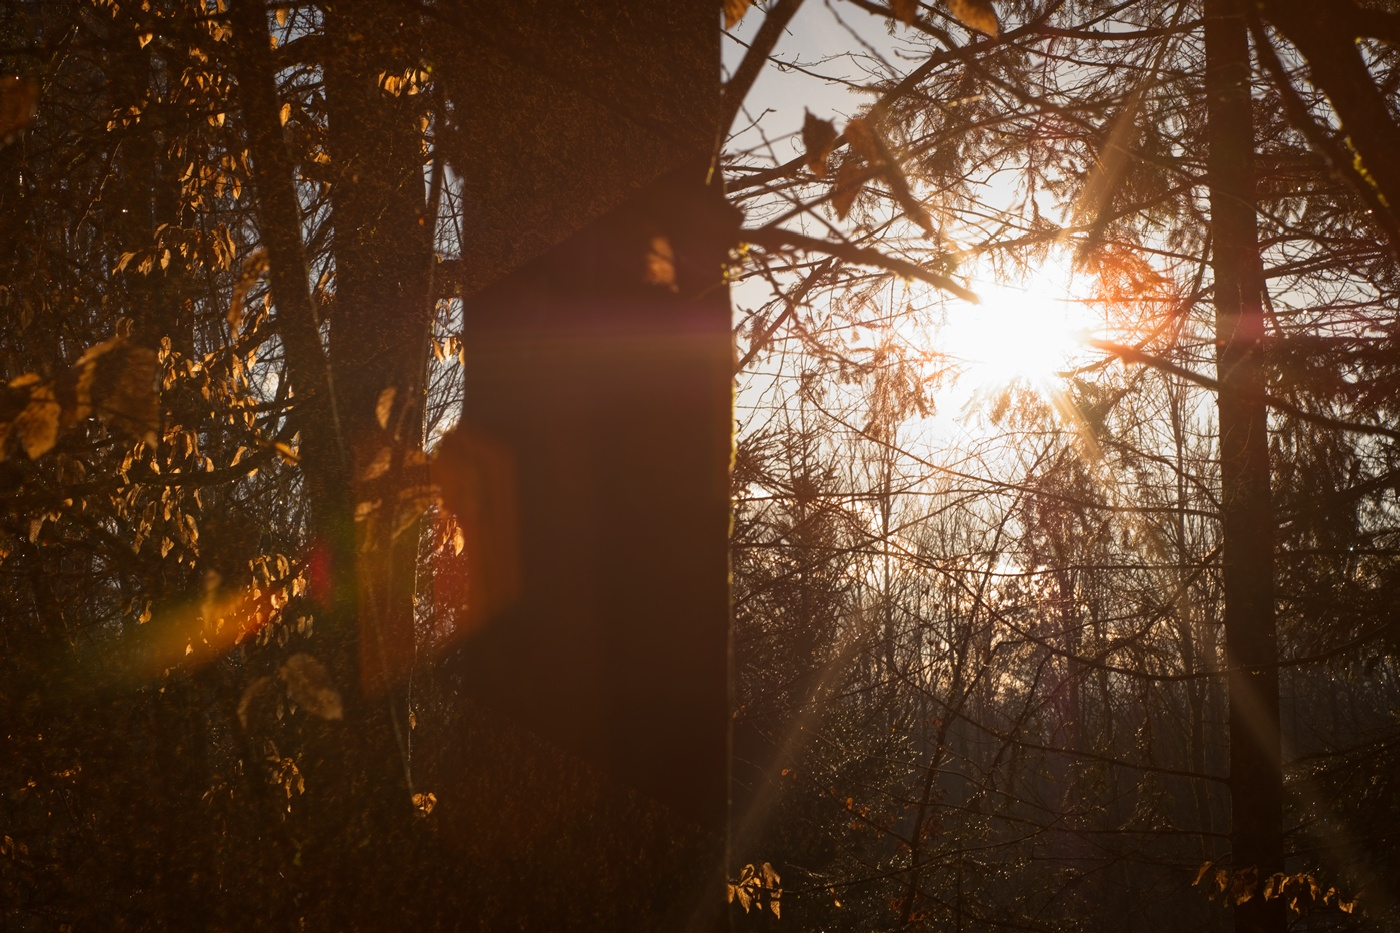 Lens flare with Yashica 50mm on Fujifilm X-E3